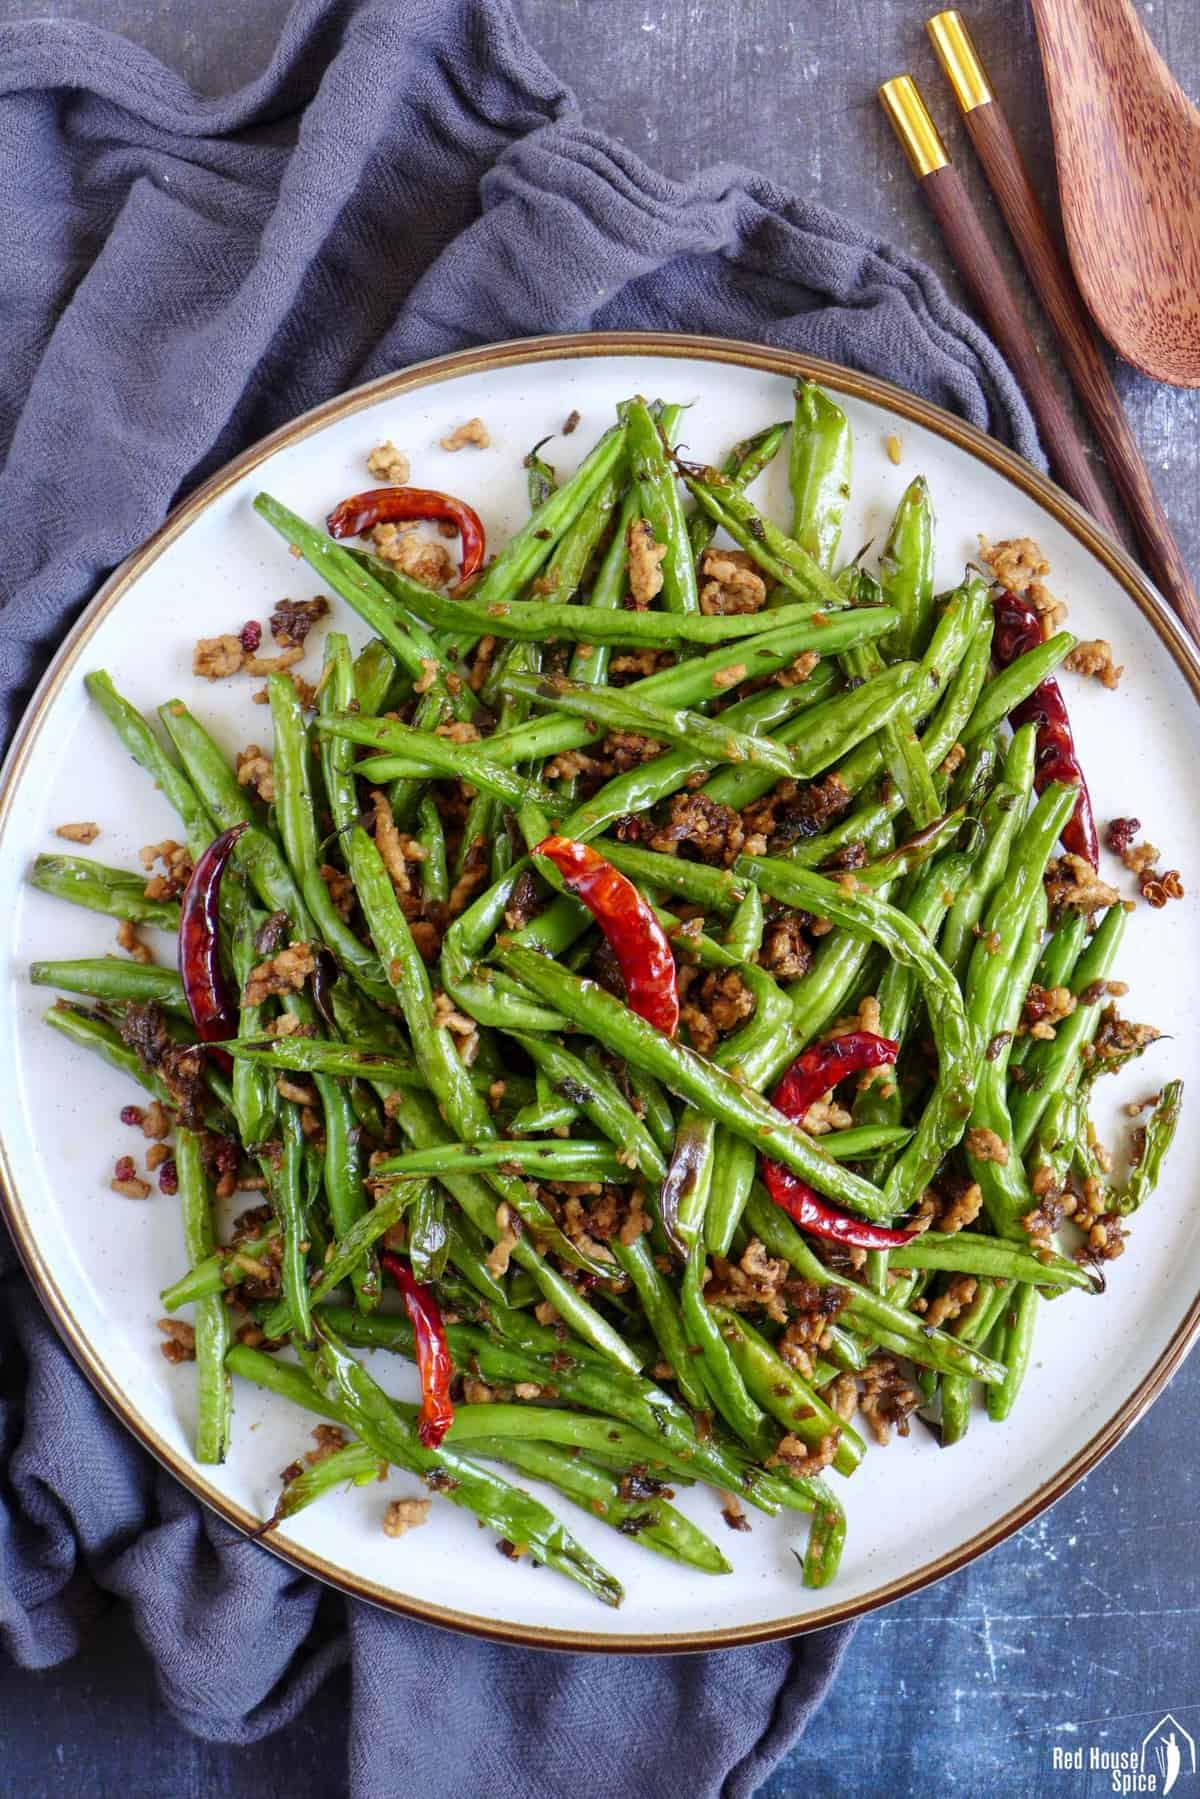 Sichuan dry fried green beans on a plate